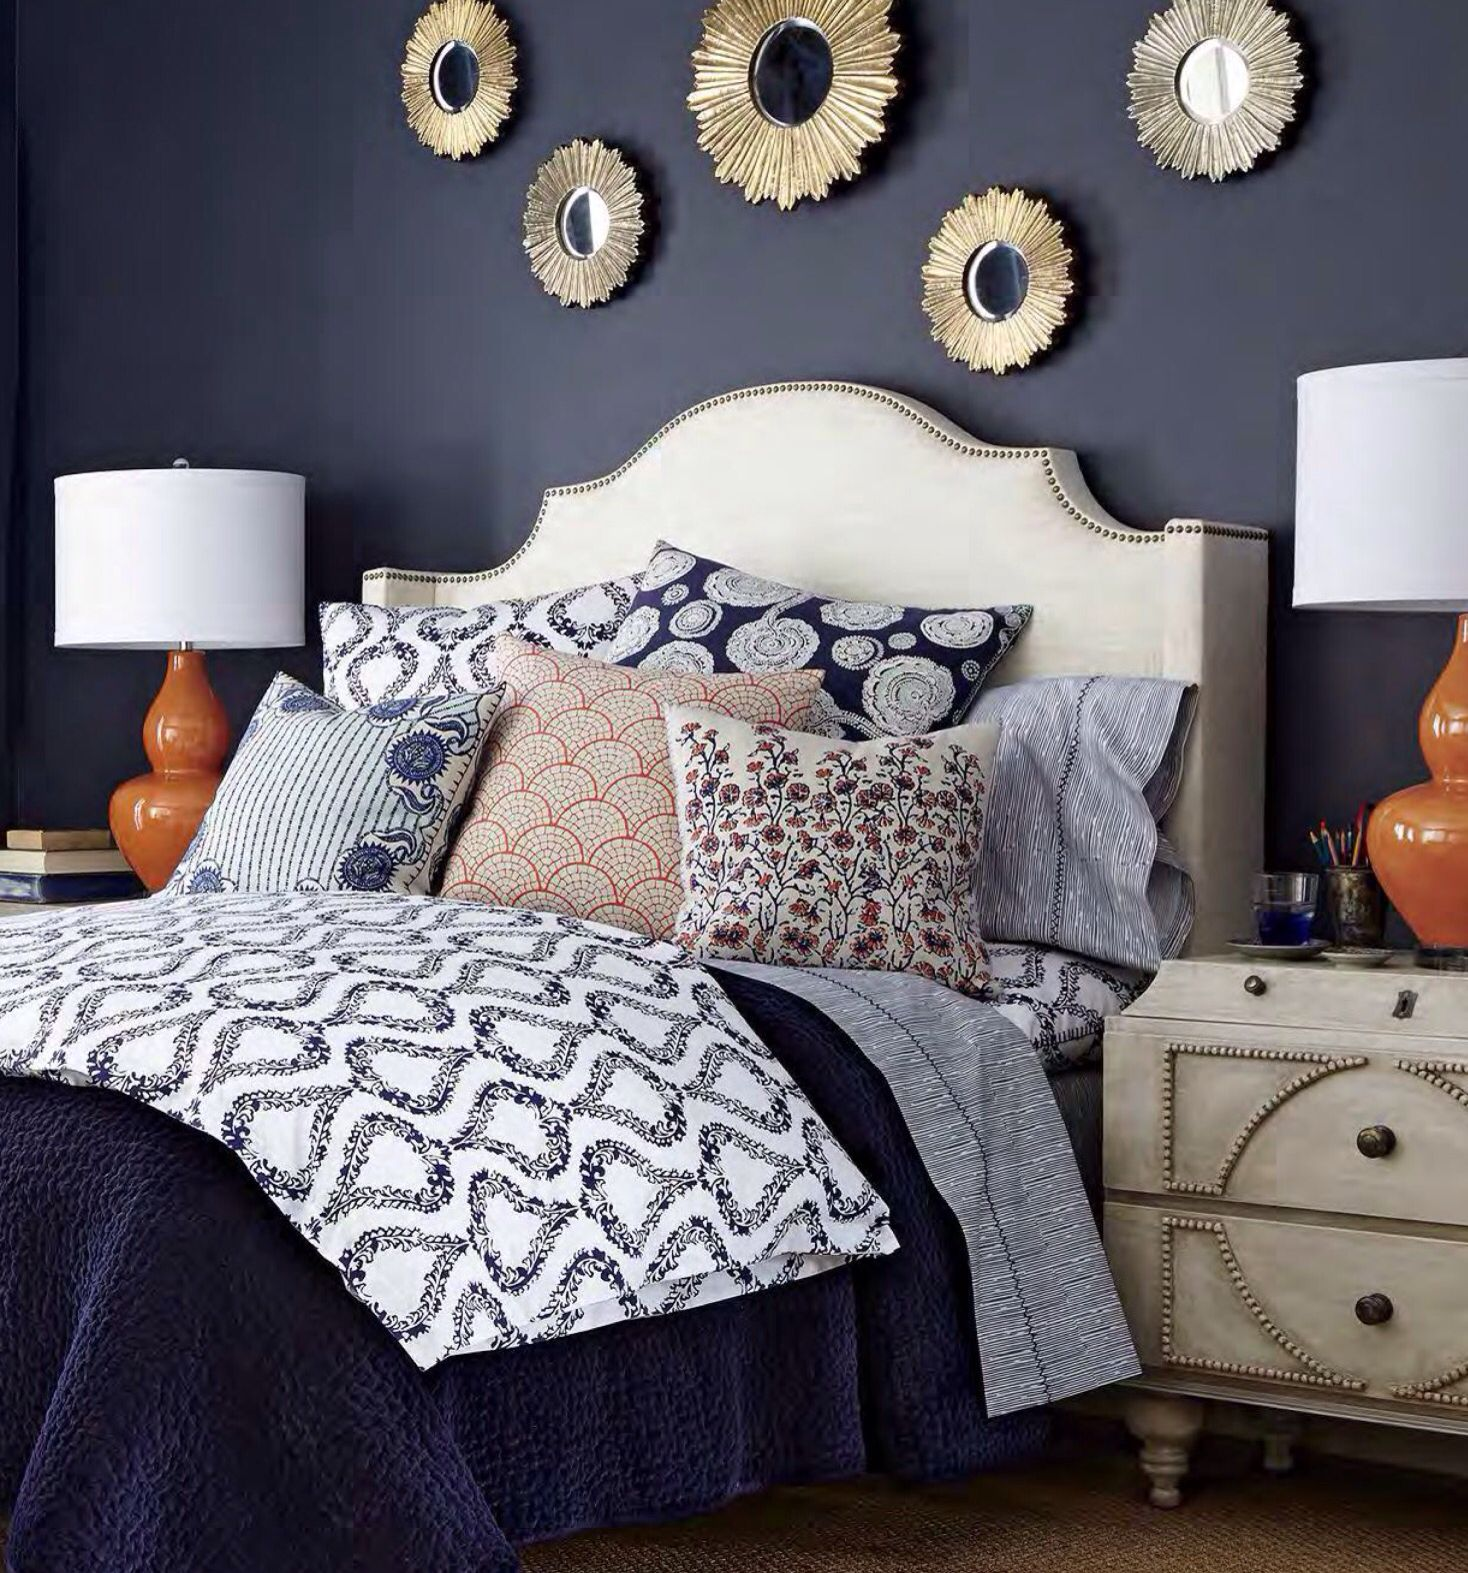 16 Relaxing Bedroom Designs For Your Comfort: Home, Home Decor, Beautiful Bedrooms Master